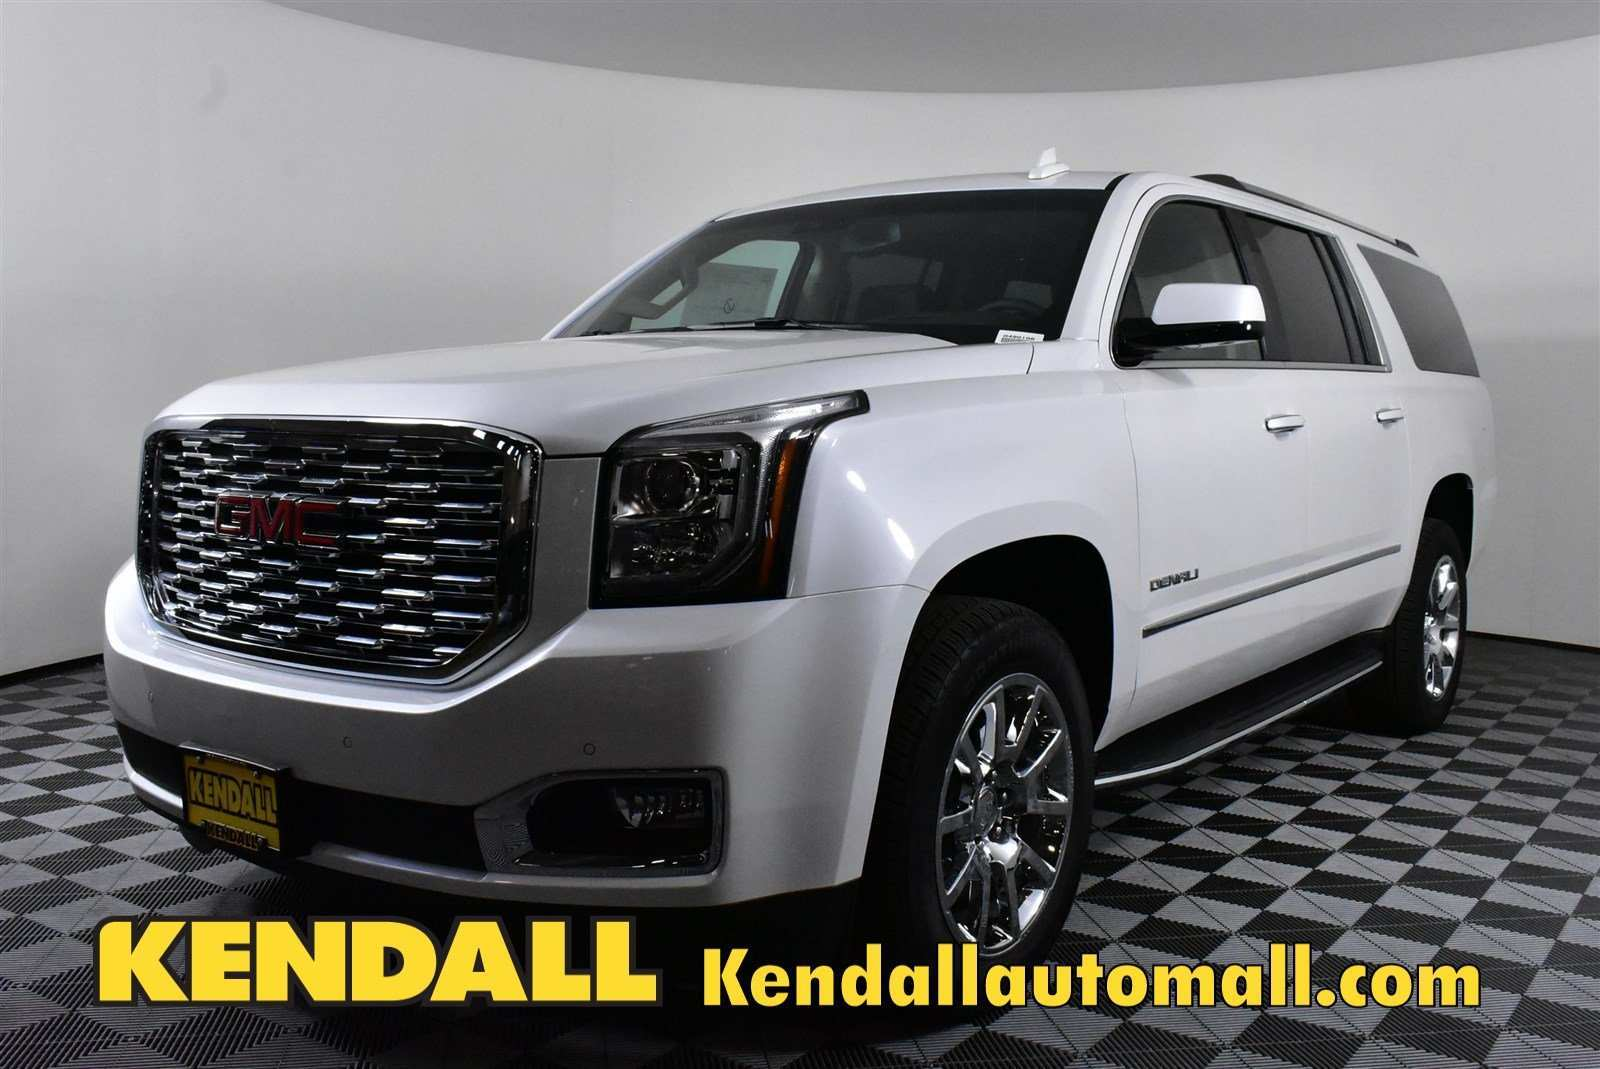 36 Great New 2019 Gmc Yukon Spesification for New 2019 Gmc Yukon